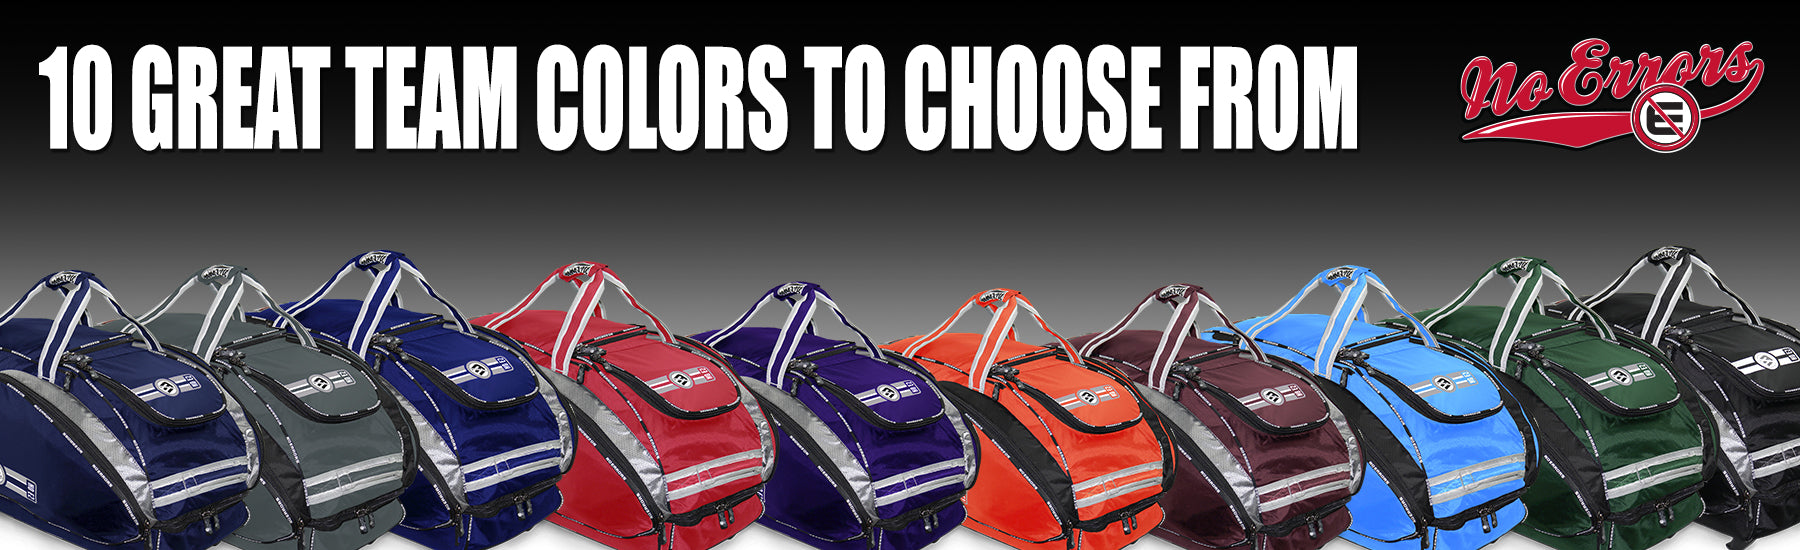 NO-ERRORS Baseball and Softball bags